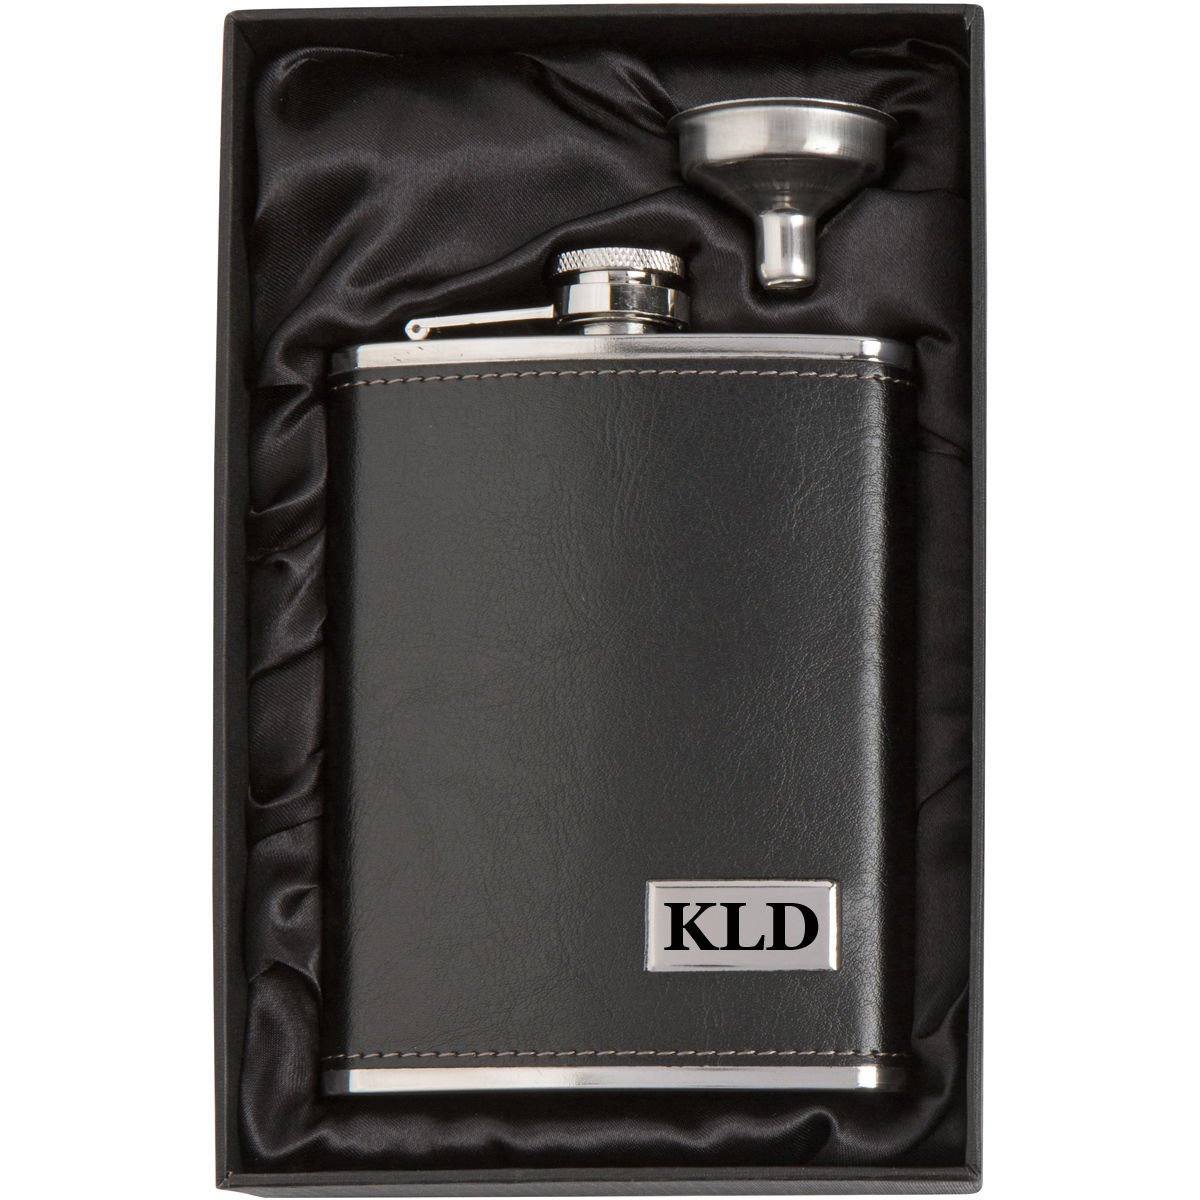 Engraved 8oz Leather Wrapped Stainless Steel Hip Flask & Funnel Gift Set Custom Personalized by Daylor